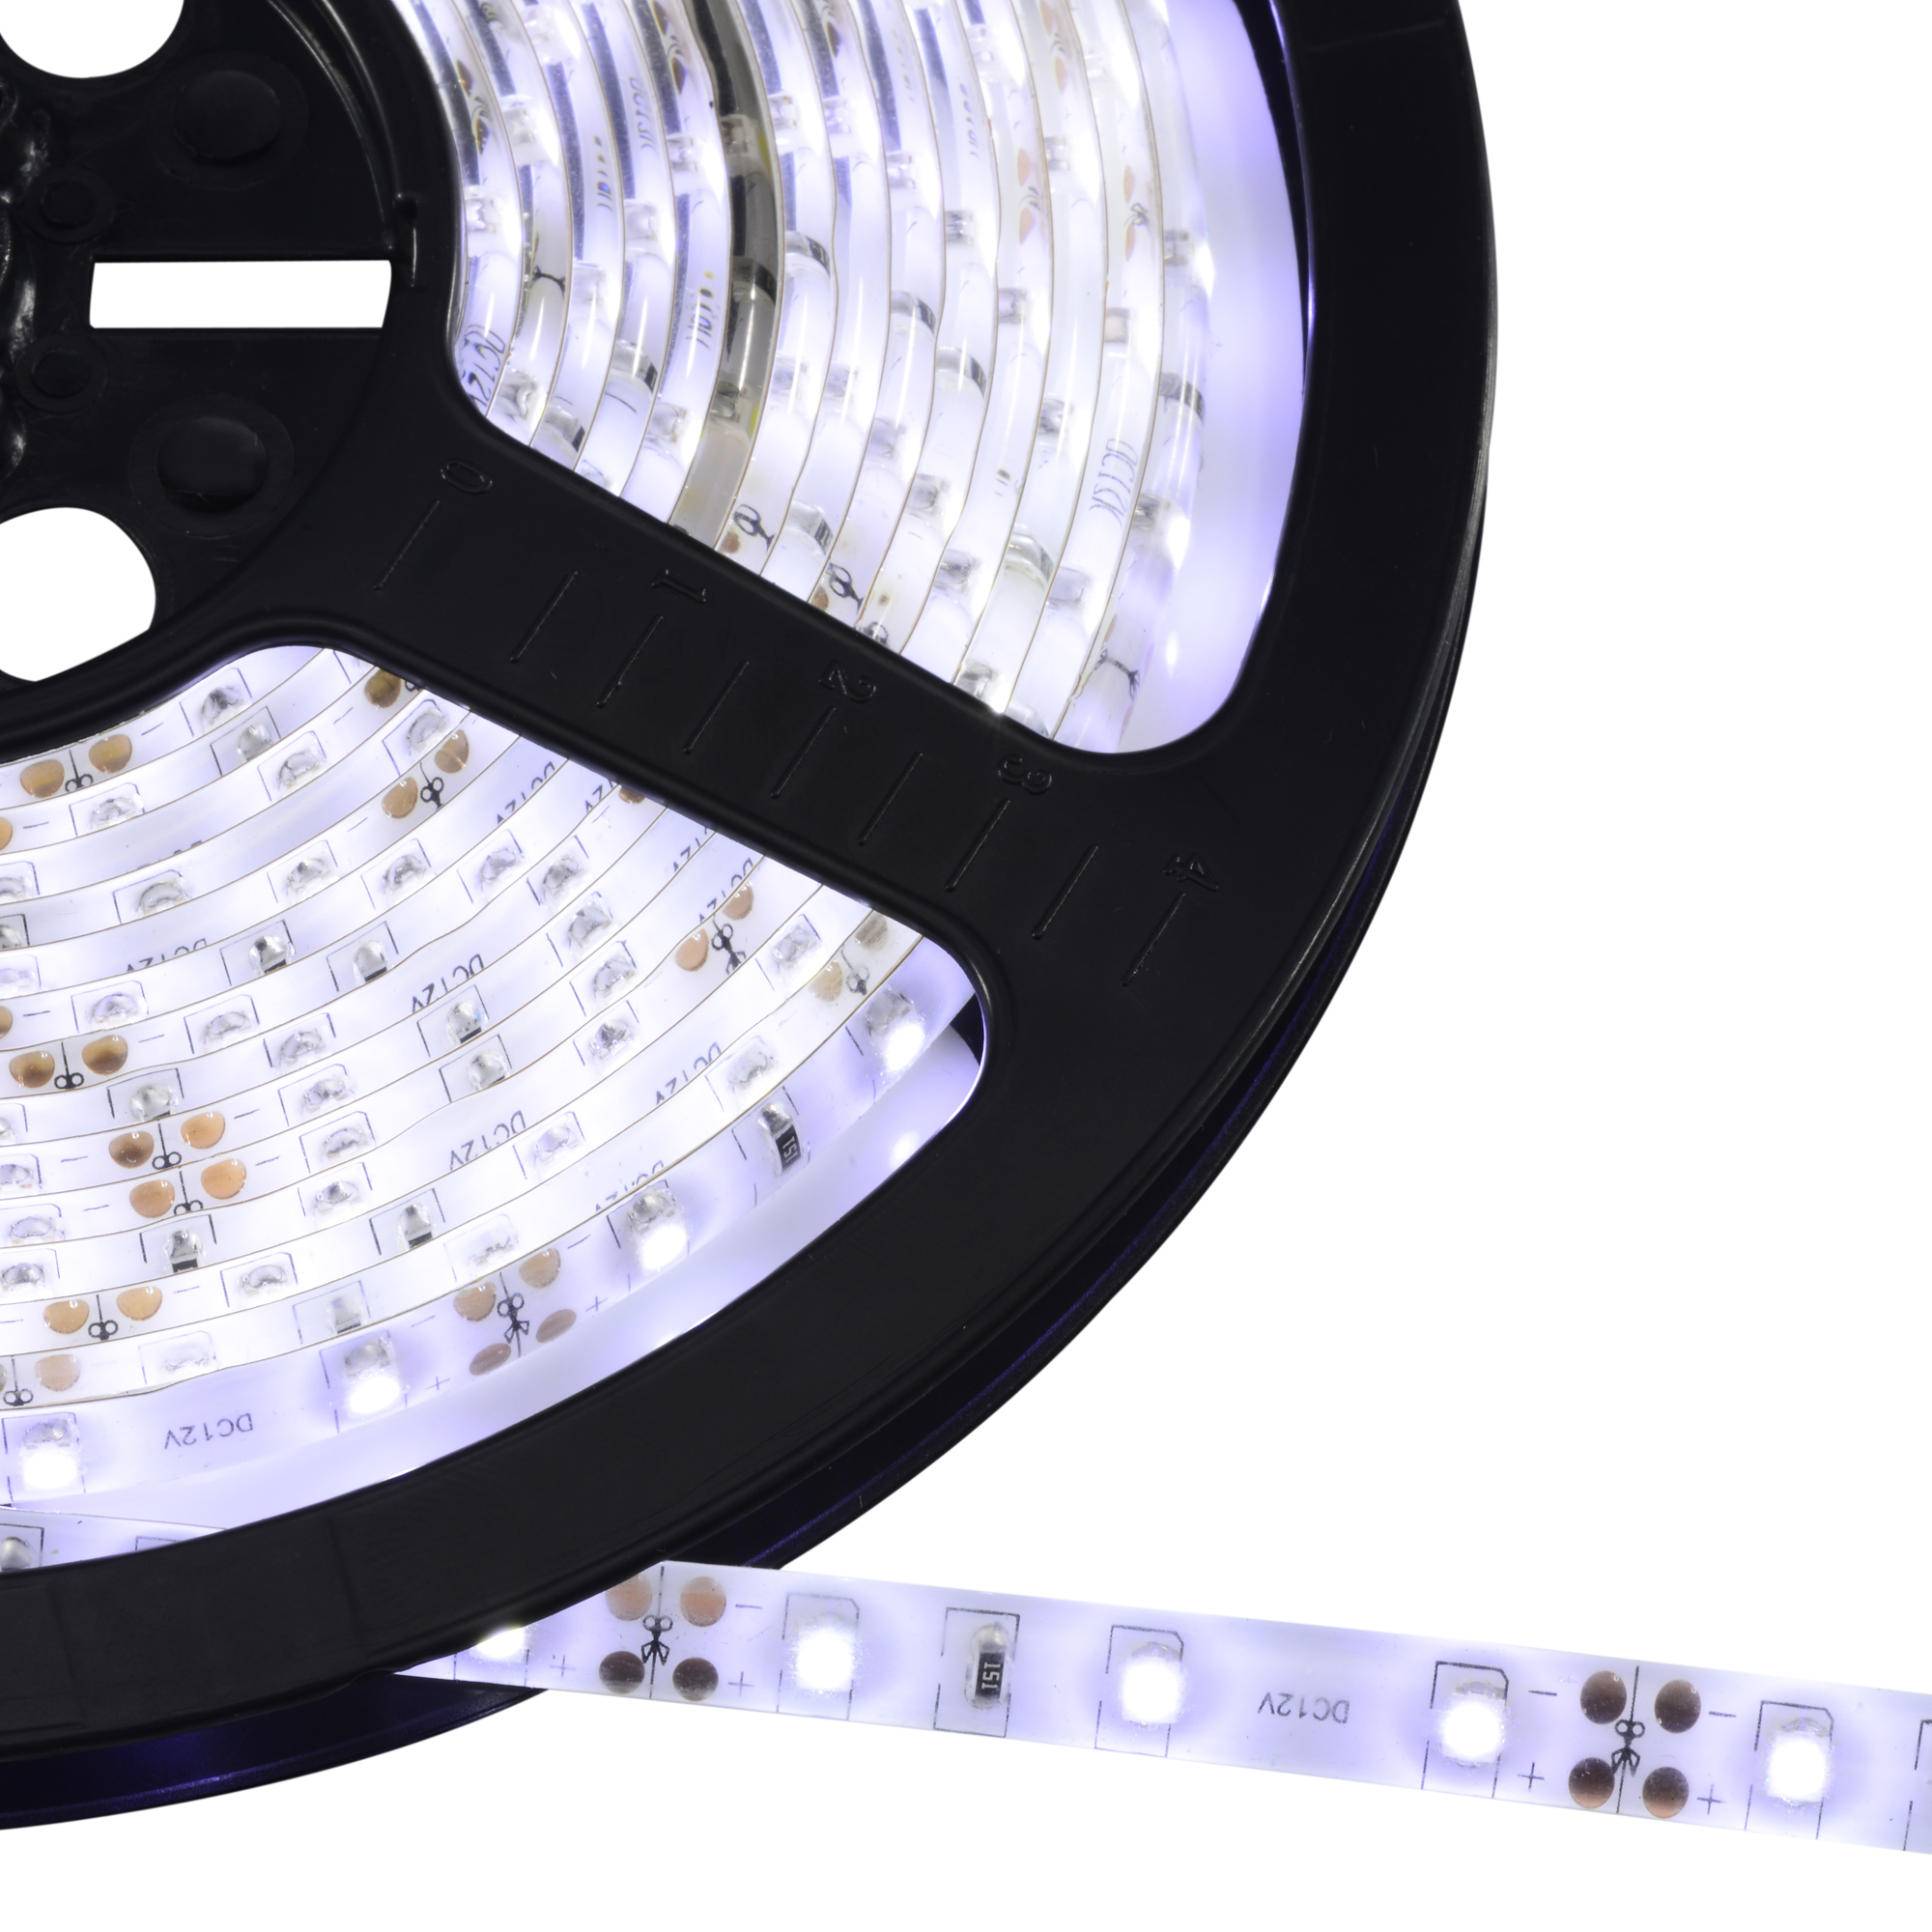 Lampada LED ultron save-E Lampada LED Band 5m kaltBianco